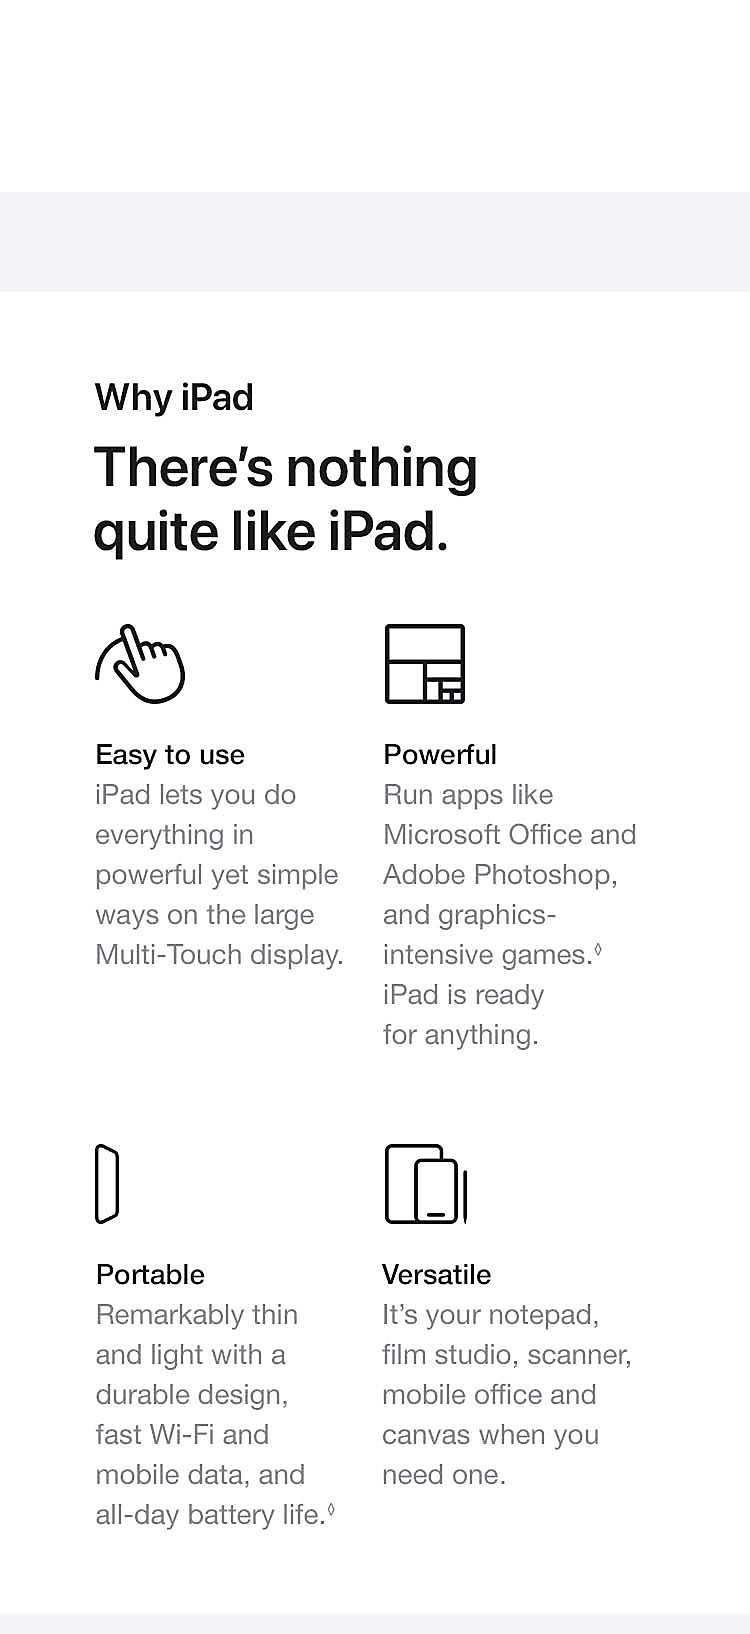 There's nothing quite like iPad.